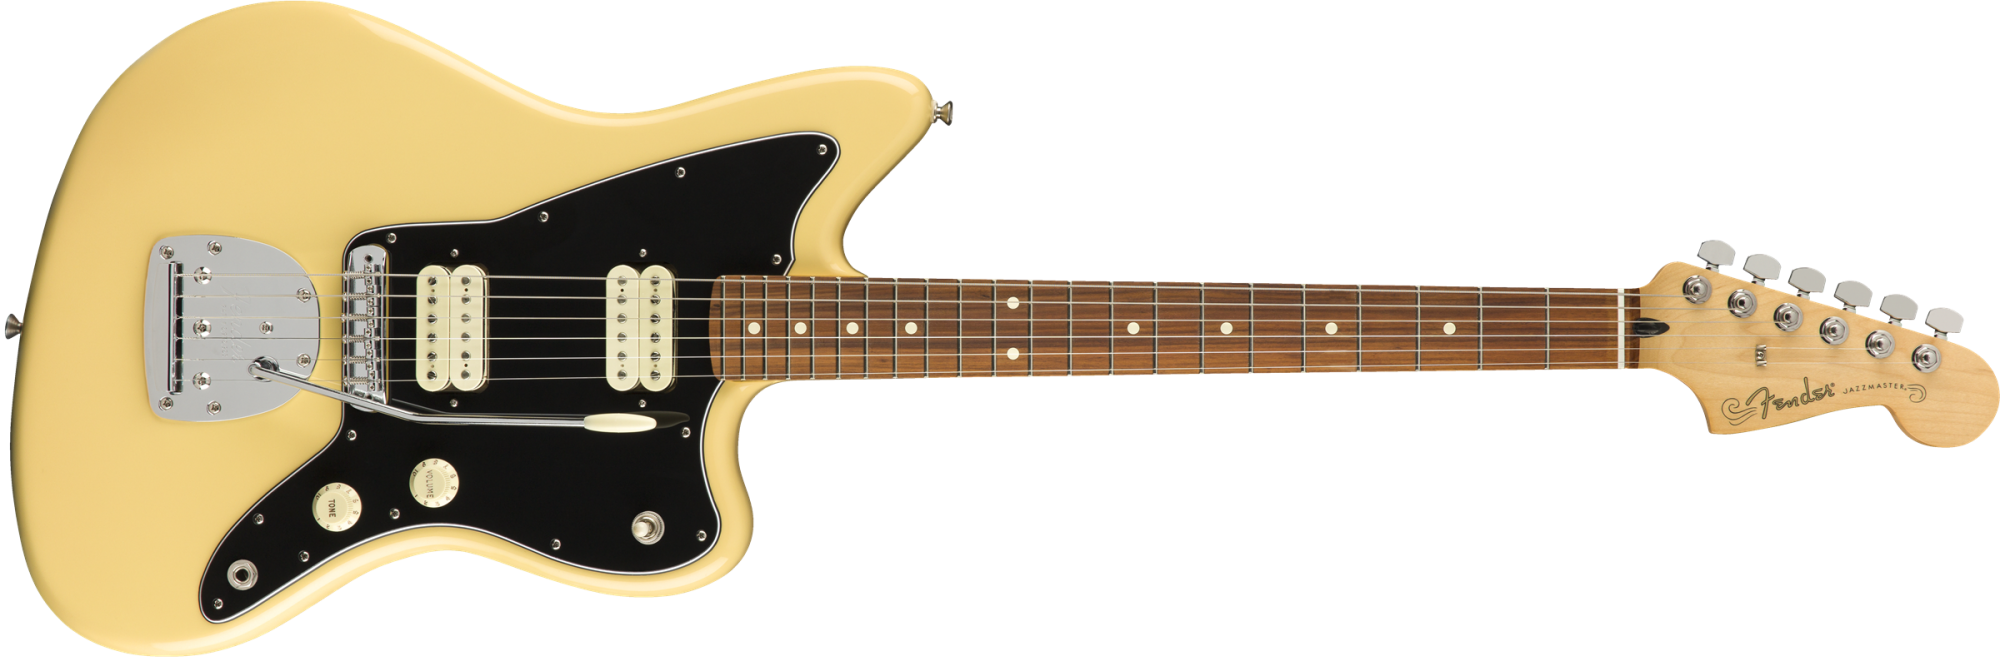 Fender Player Jazzmaster Guitar - Buttercream